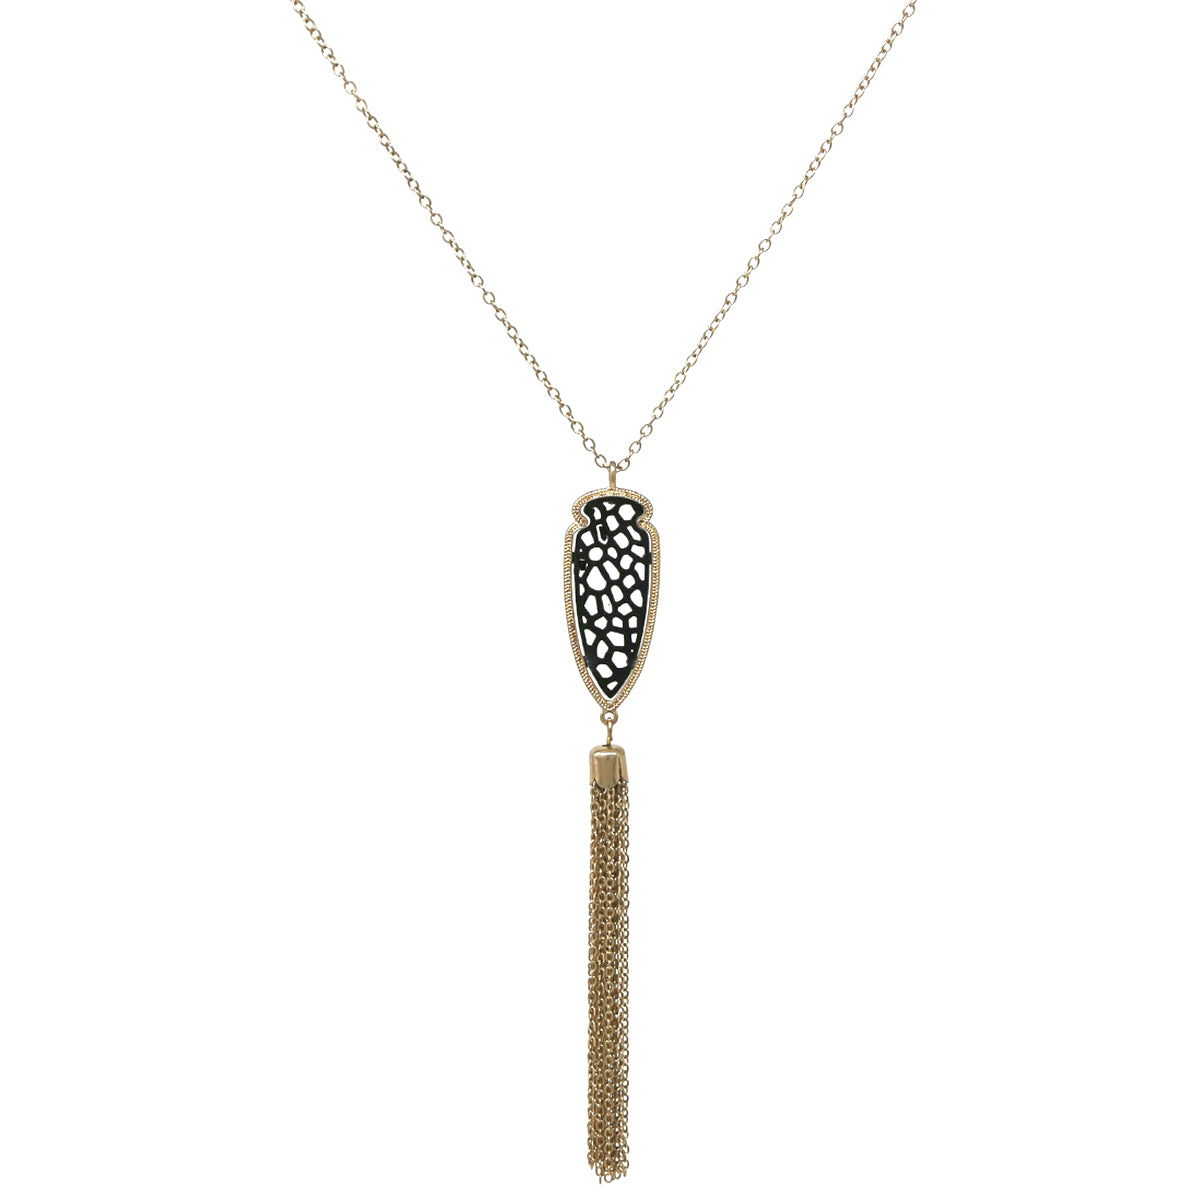 Filigree Laser Cut Faux Leather Bullet Head Shape Pendant with Tassel Long Necklace